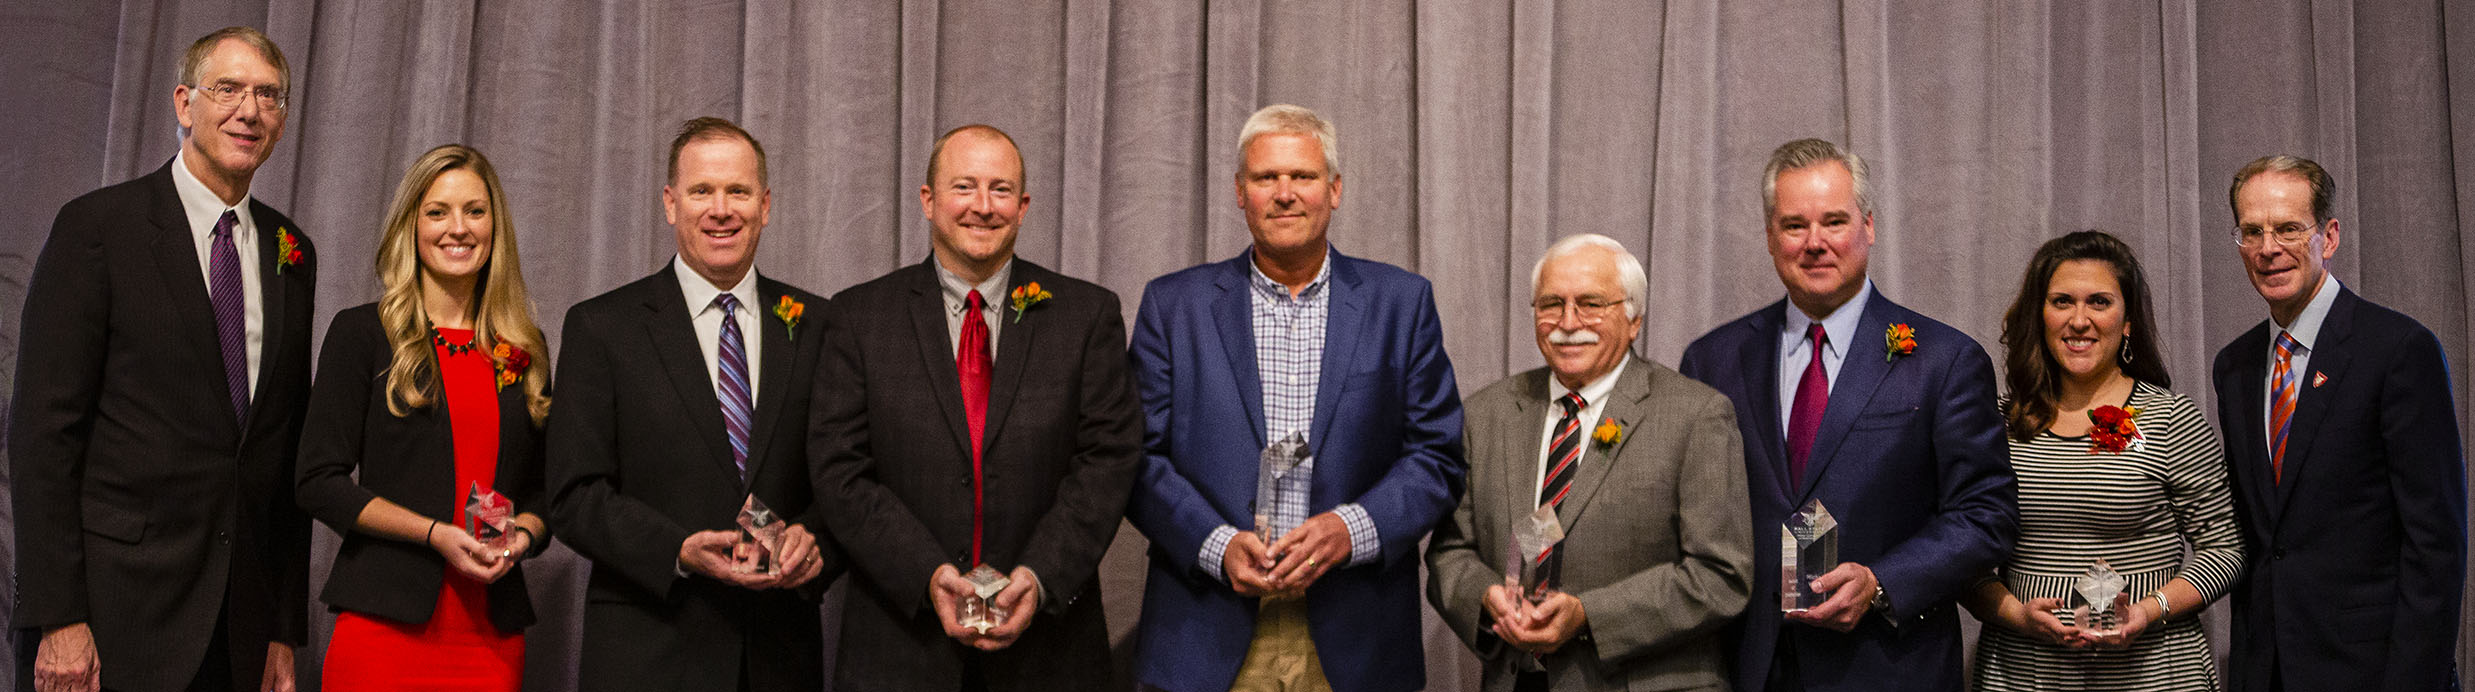 15th Annual Miller College Alumni Award Recipients Photo